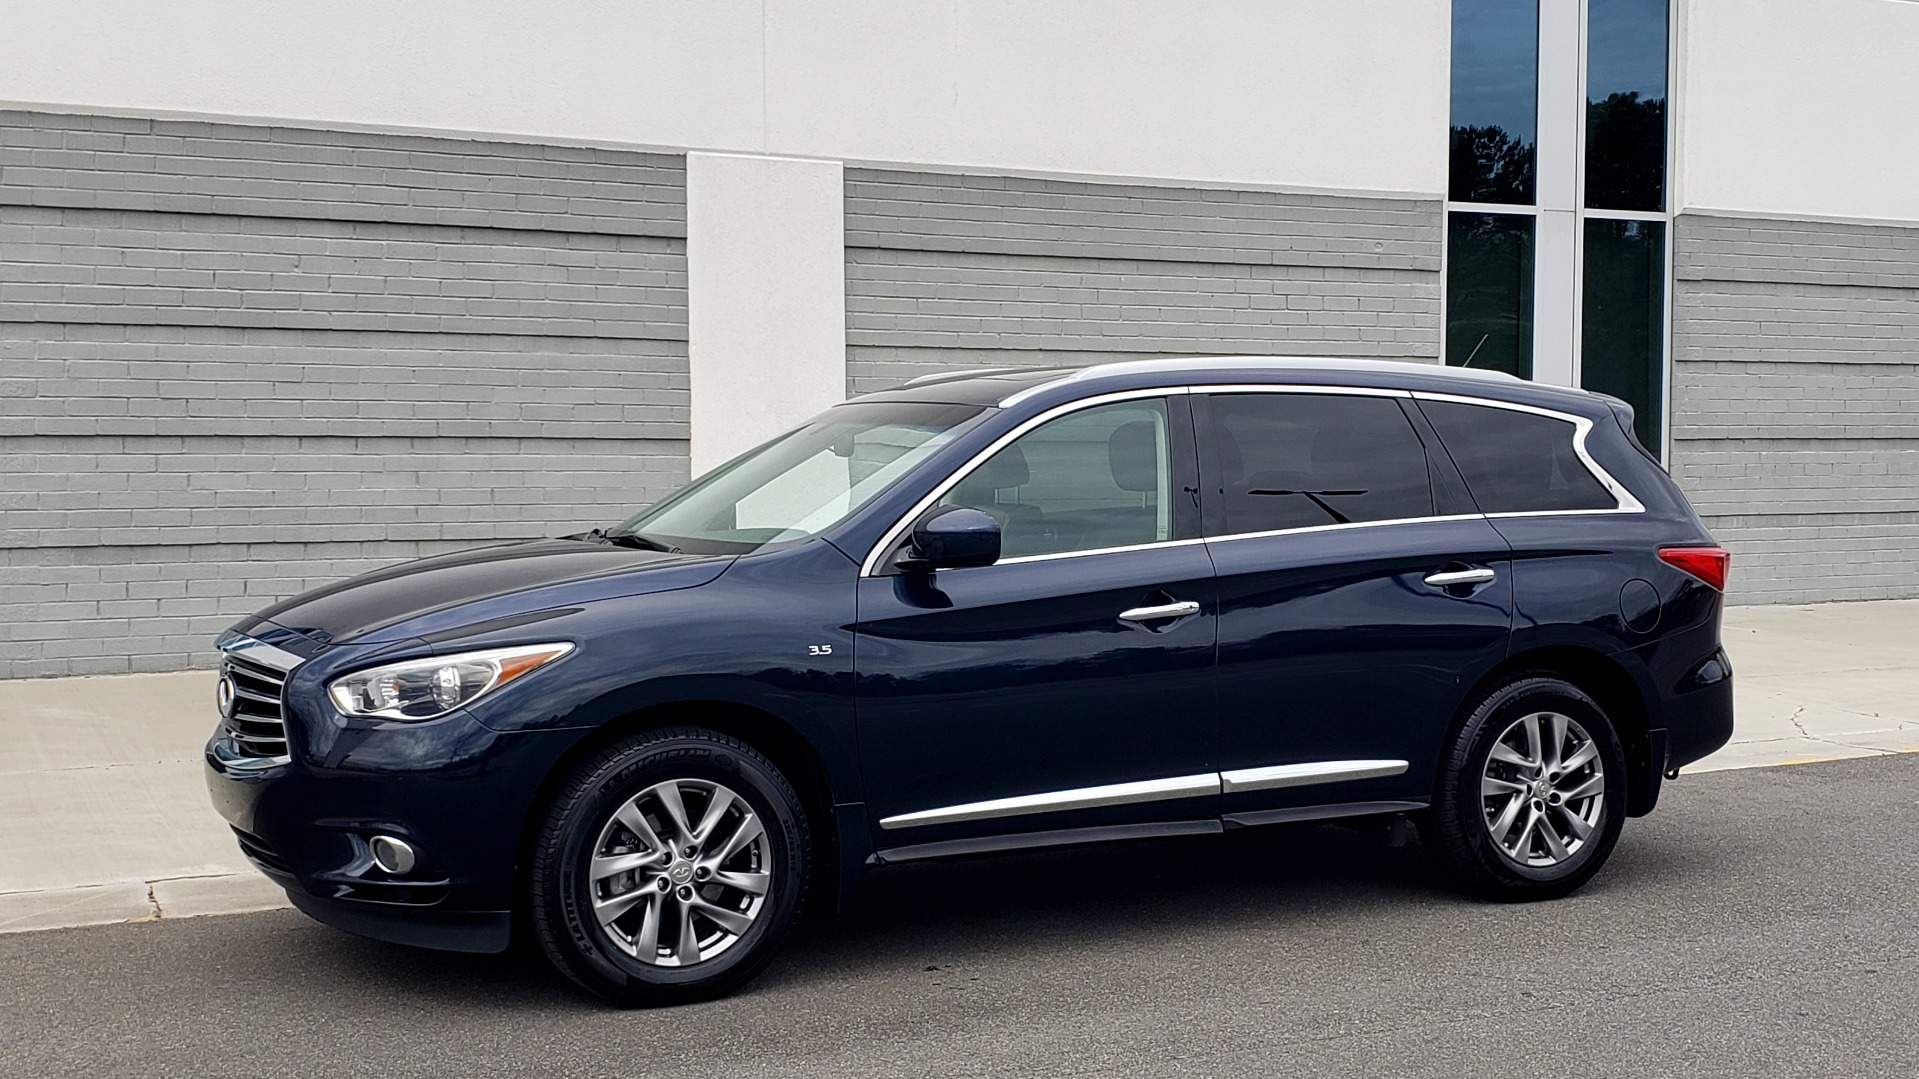 Used 2015 INFINITI QX60 3.5L SUV / CVT AUTO / 3-ROW / SUNROOF / REARVIEW for sale $23,995 at Formula Imports in Charlotte NC 28227 3